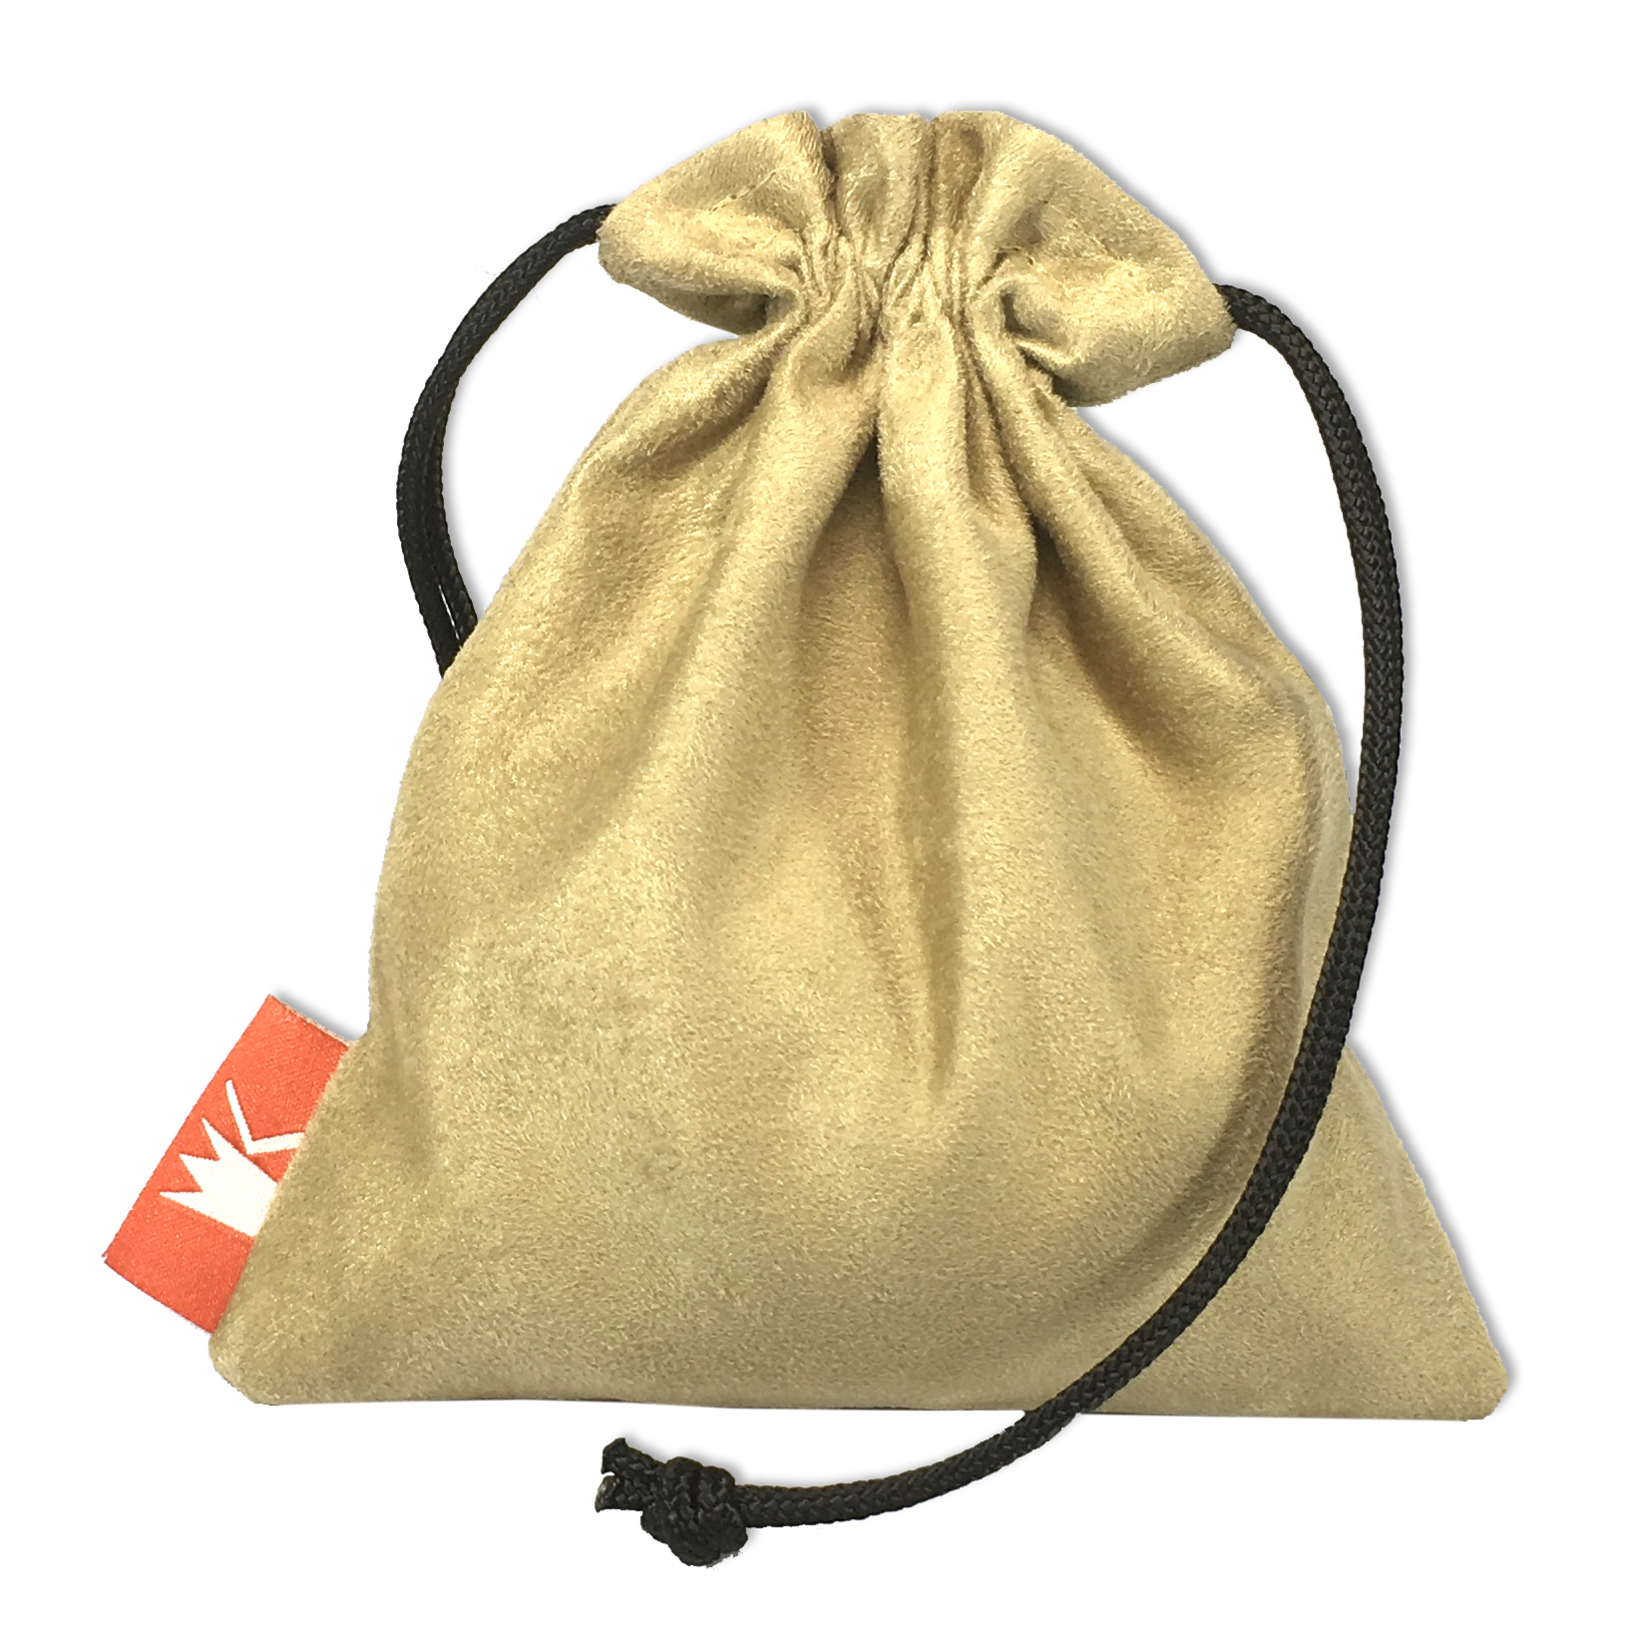 Red King Red King Dice Bag: Classic Tan